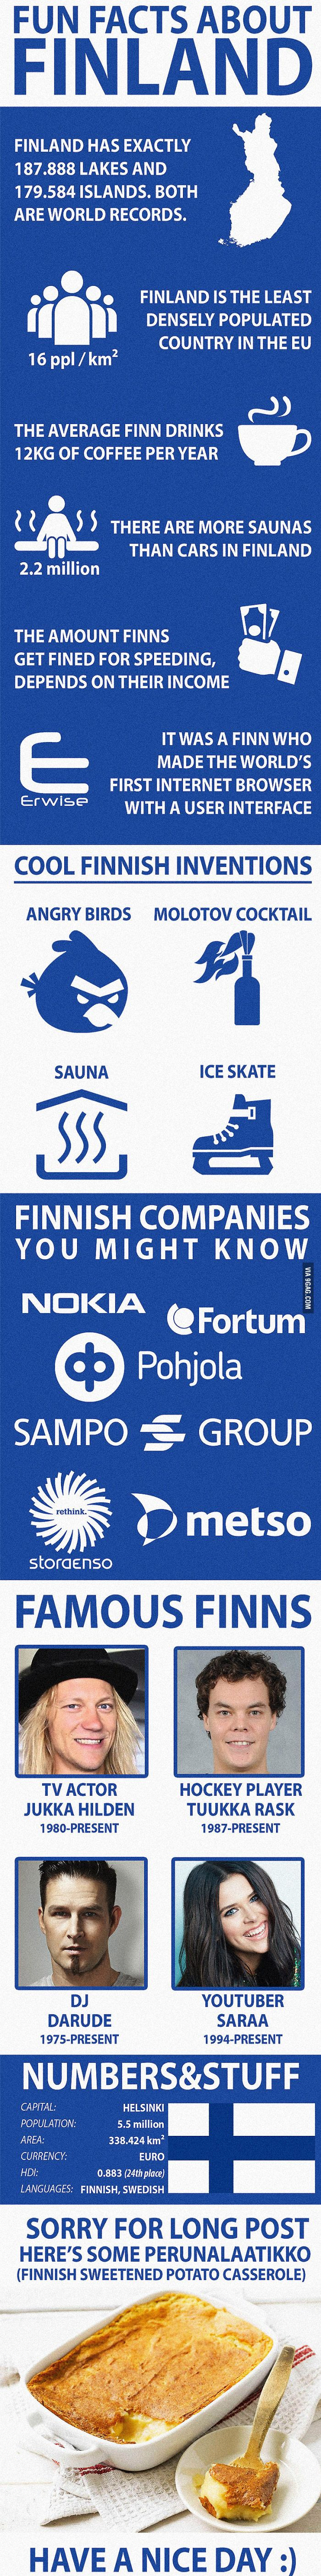 Fun Facts about Finland